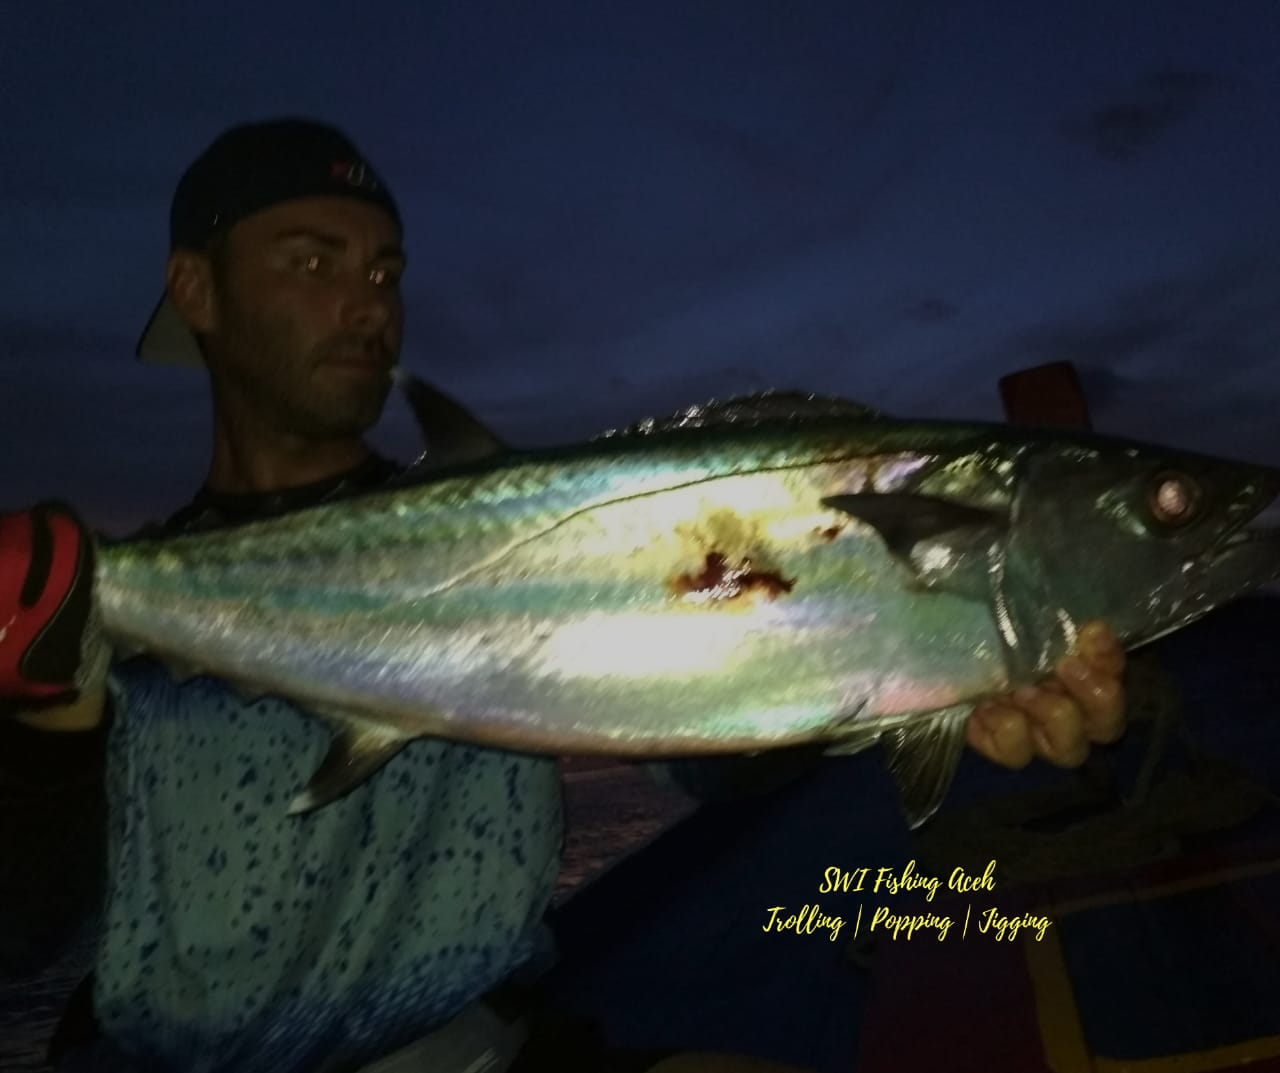 Aceh Island & Banda Aceh Fishing Tour Package 3 Days 2 Nights